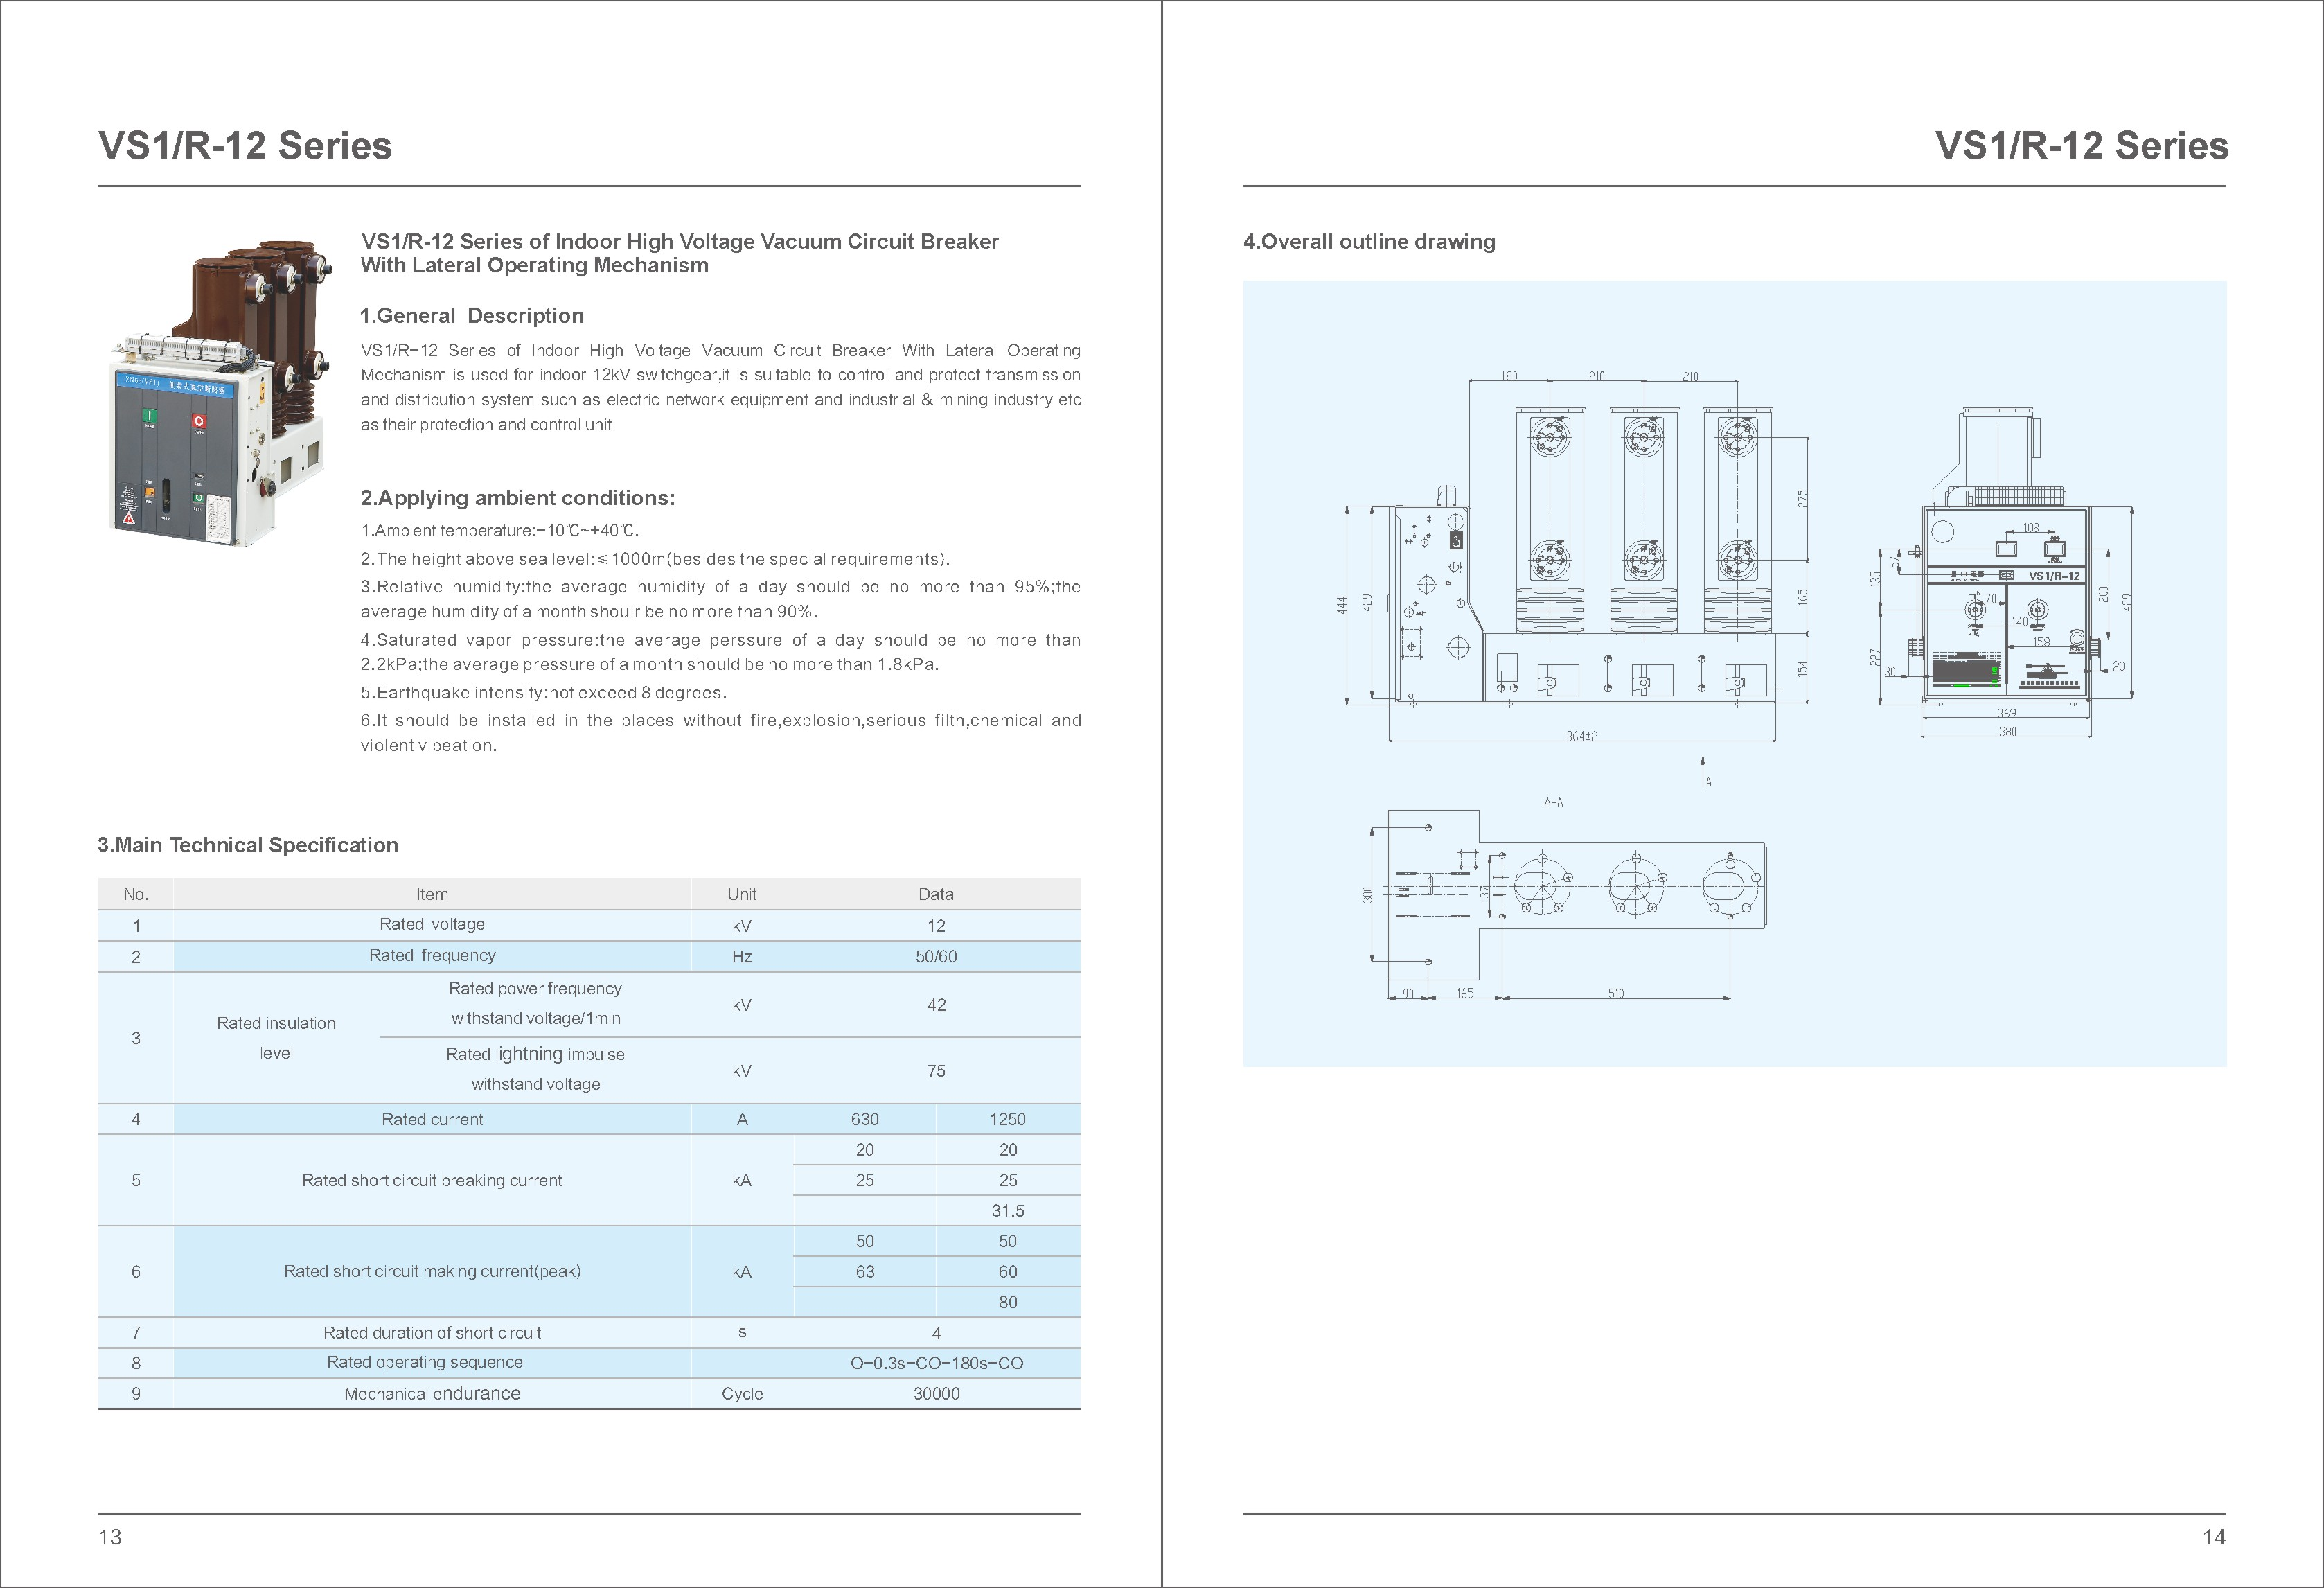 VS1/R-12/630-25 Type VCB Technical Specification